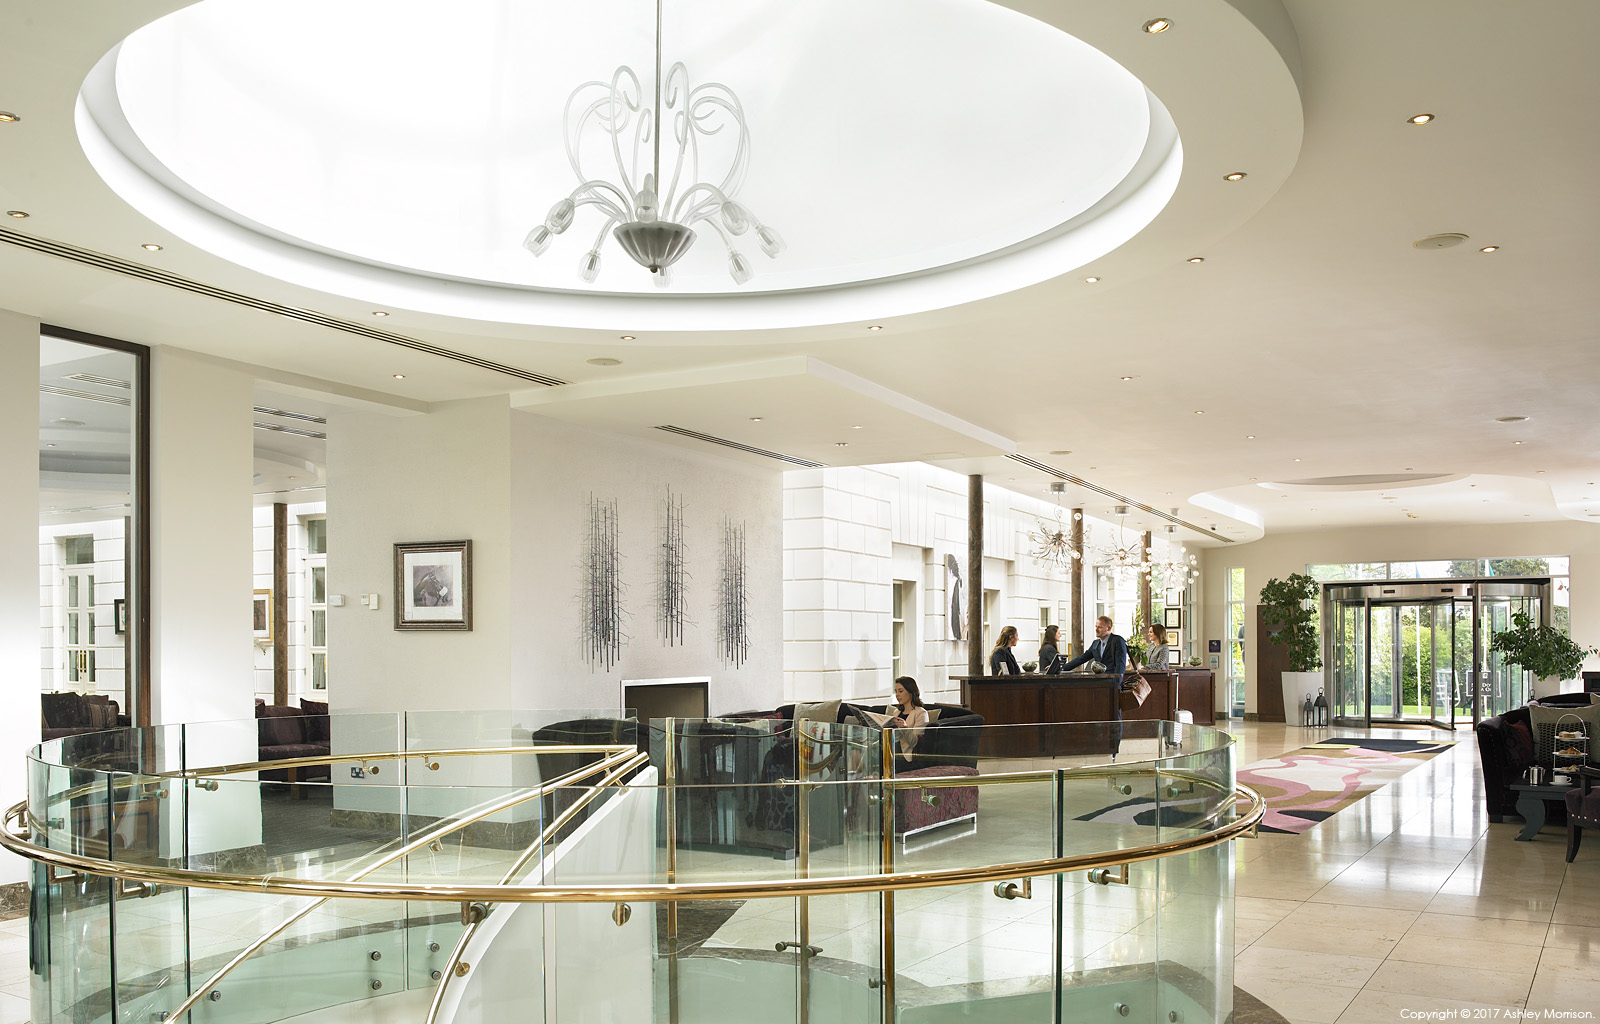 The Lobby & Reception area at Dunboyne Castle Hotel & Spa in County Meath.